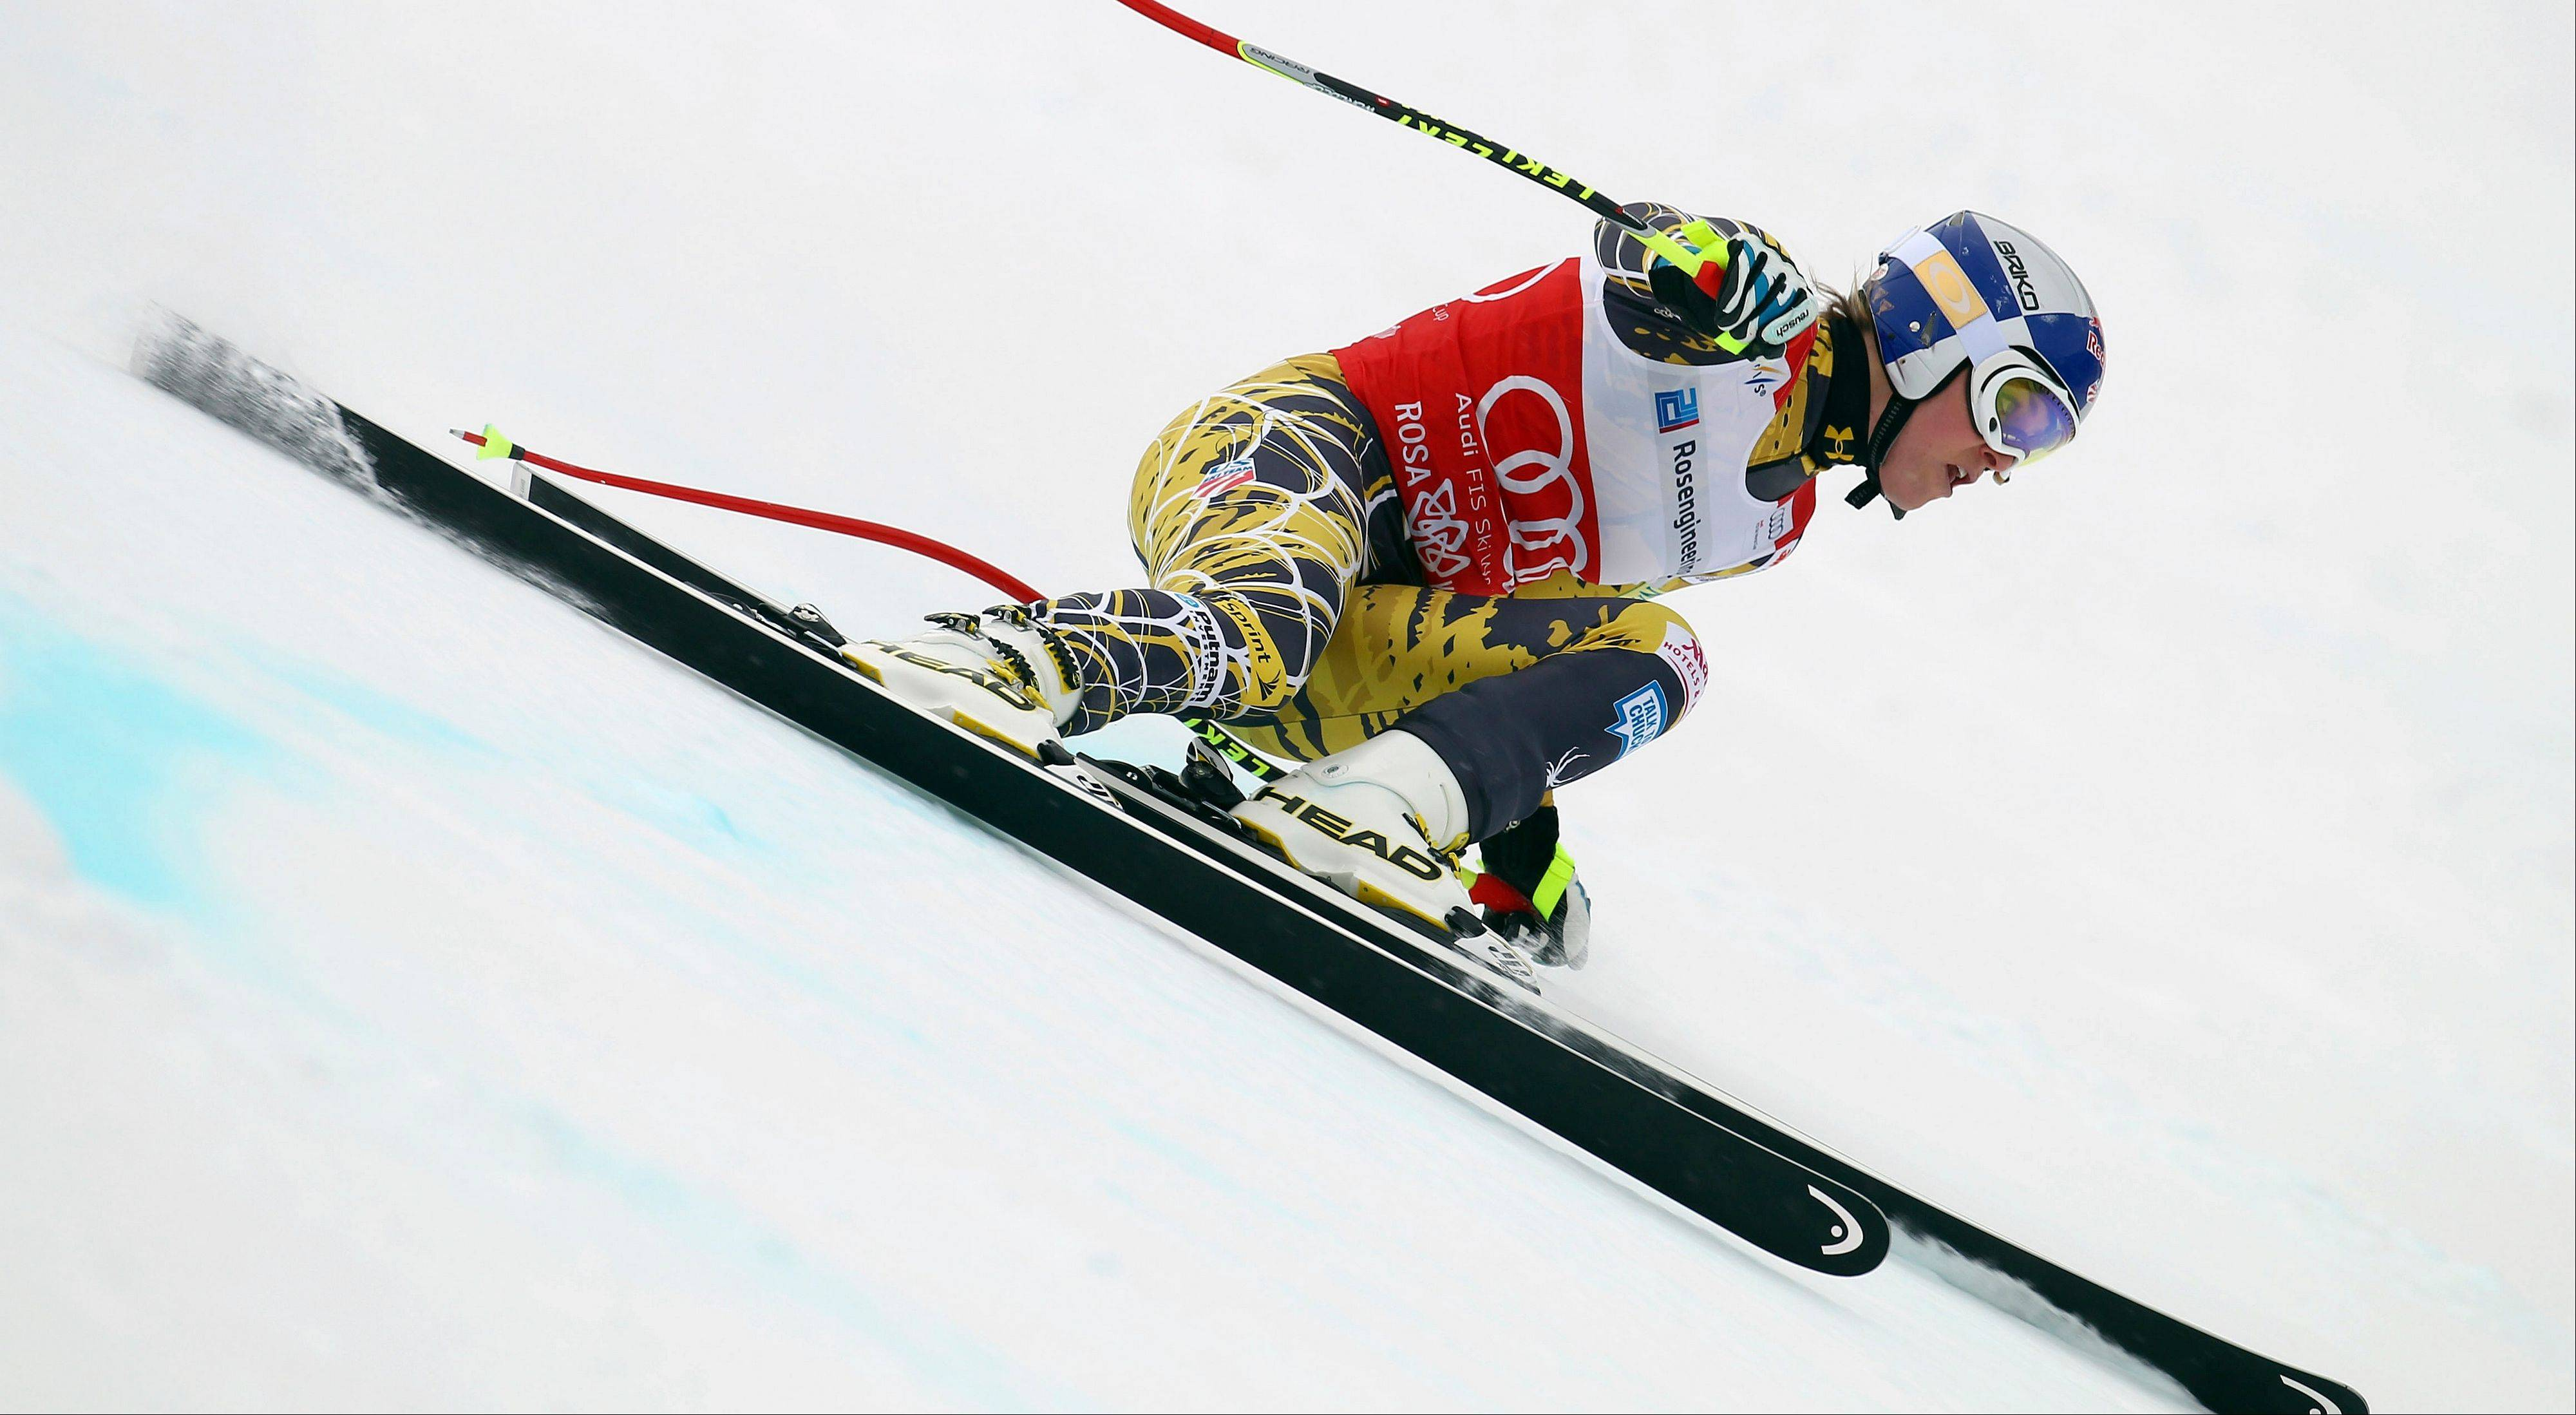 In this Feb. 18, 2012 file picture Lindsey Vonn, of the United States, competes during a women�s World Cup downhill on the Sochi Olympics course, in Krasnaya Polyana, near Sochi, Russia . The United States ski team says it hasn�t had any �formal discussion� yet about the possibility of Lindsey Vonn entering a men�s World Cup downhill next month. Vonn, the women�s Olympic downhill champion, has written the International Ski Federation to ask whether she can challenge the men on Nov. 24 in Lake Louise, Alberta.